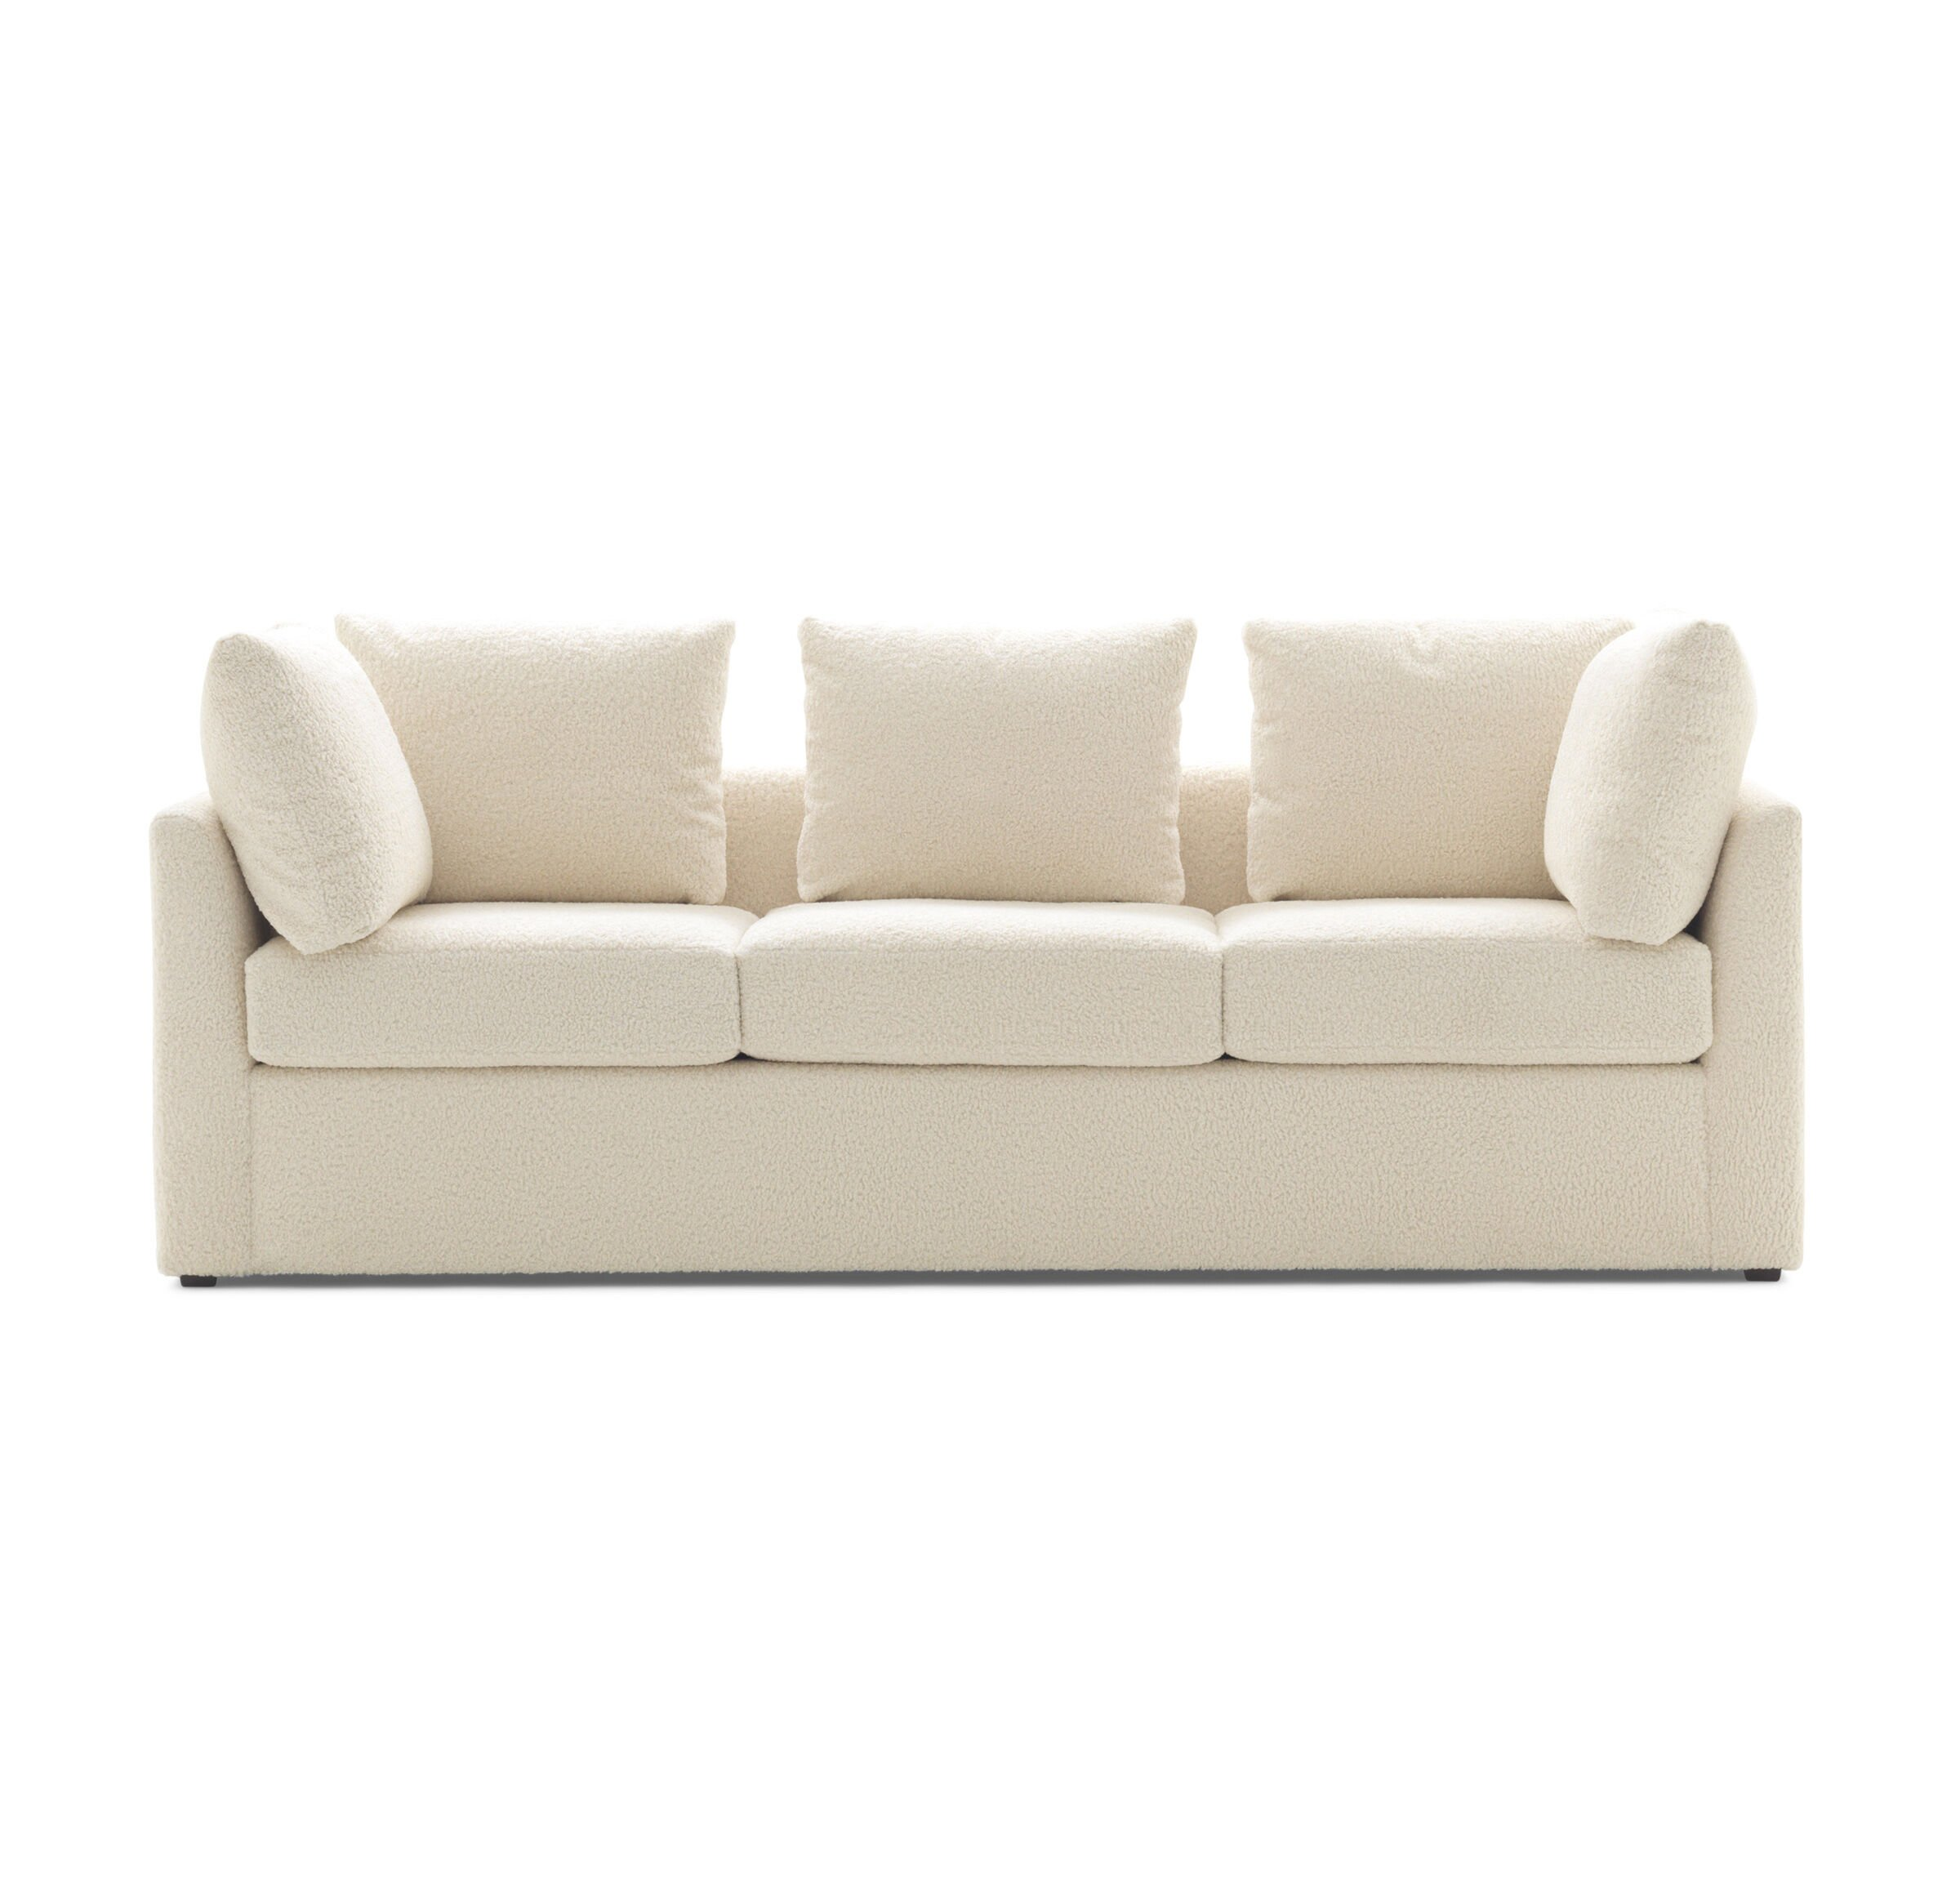 Genial PITT SOFA, SHERPA   NATURAL, Hi Res